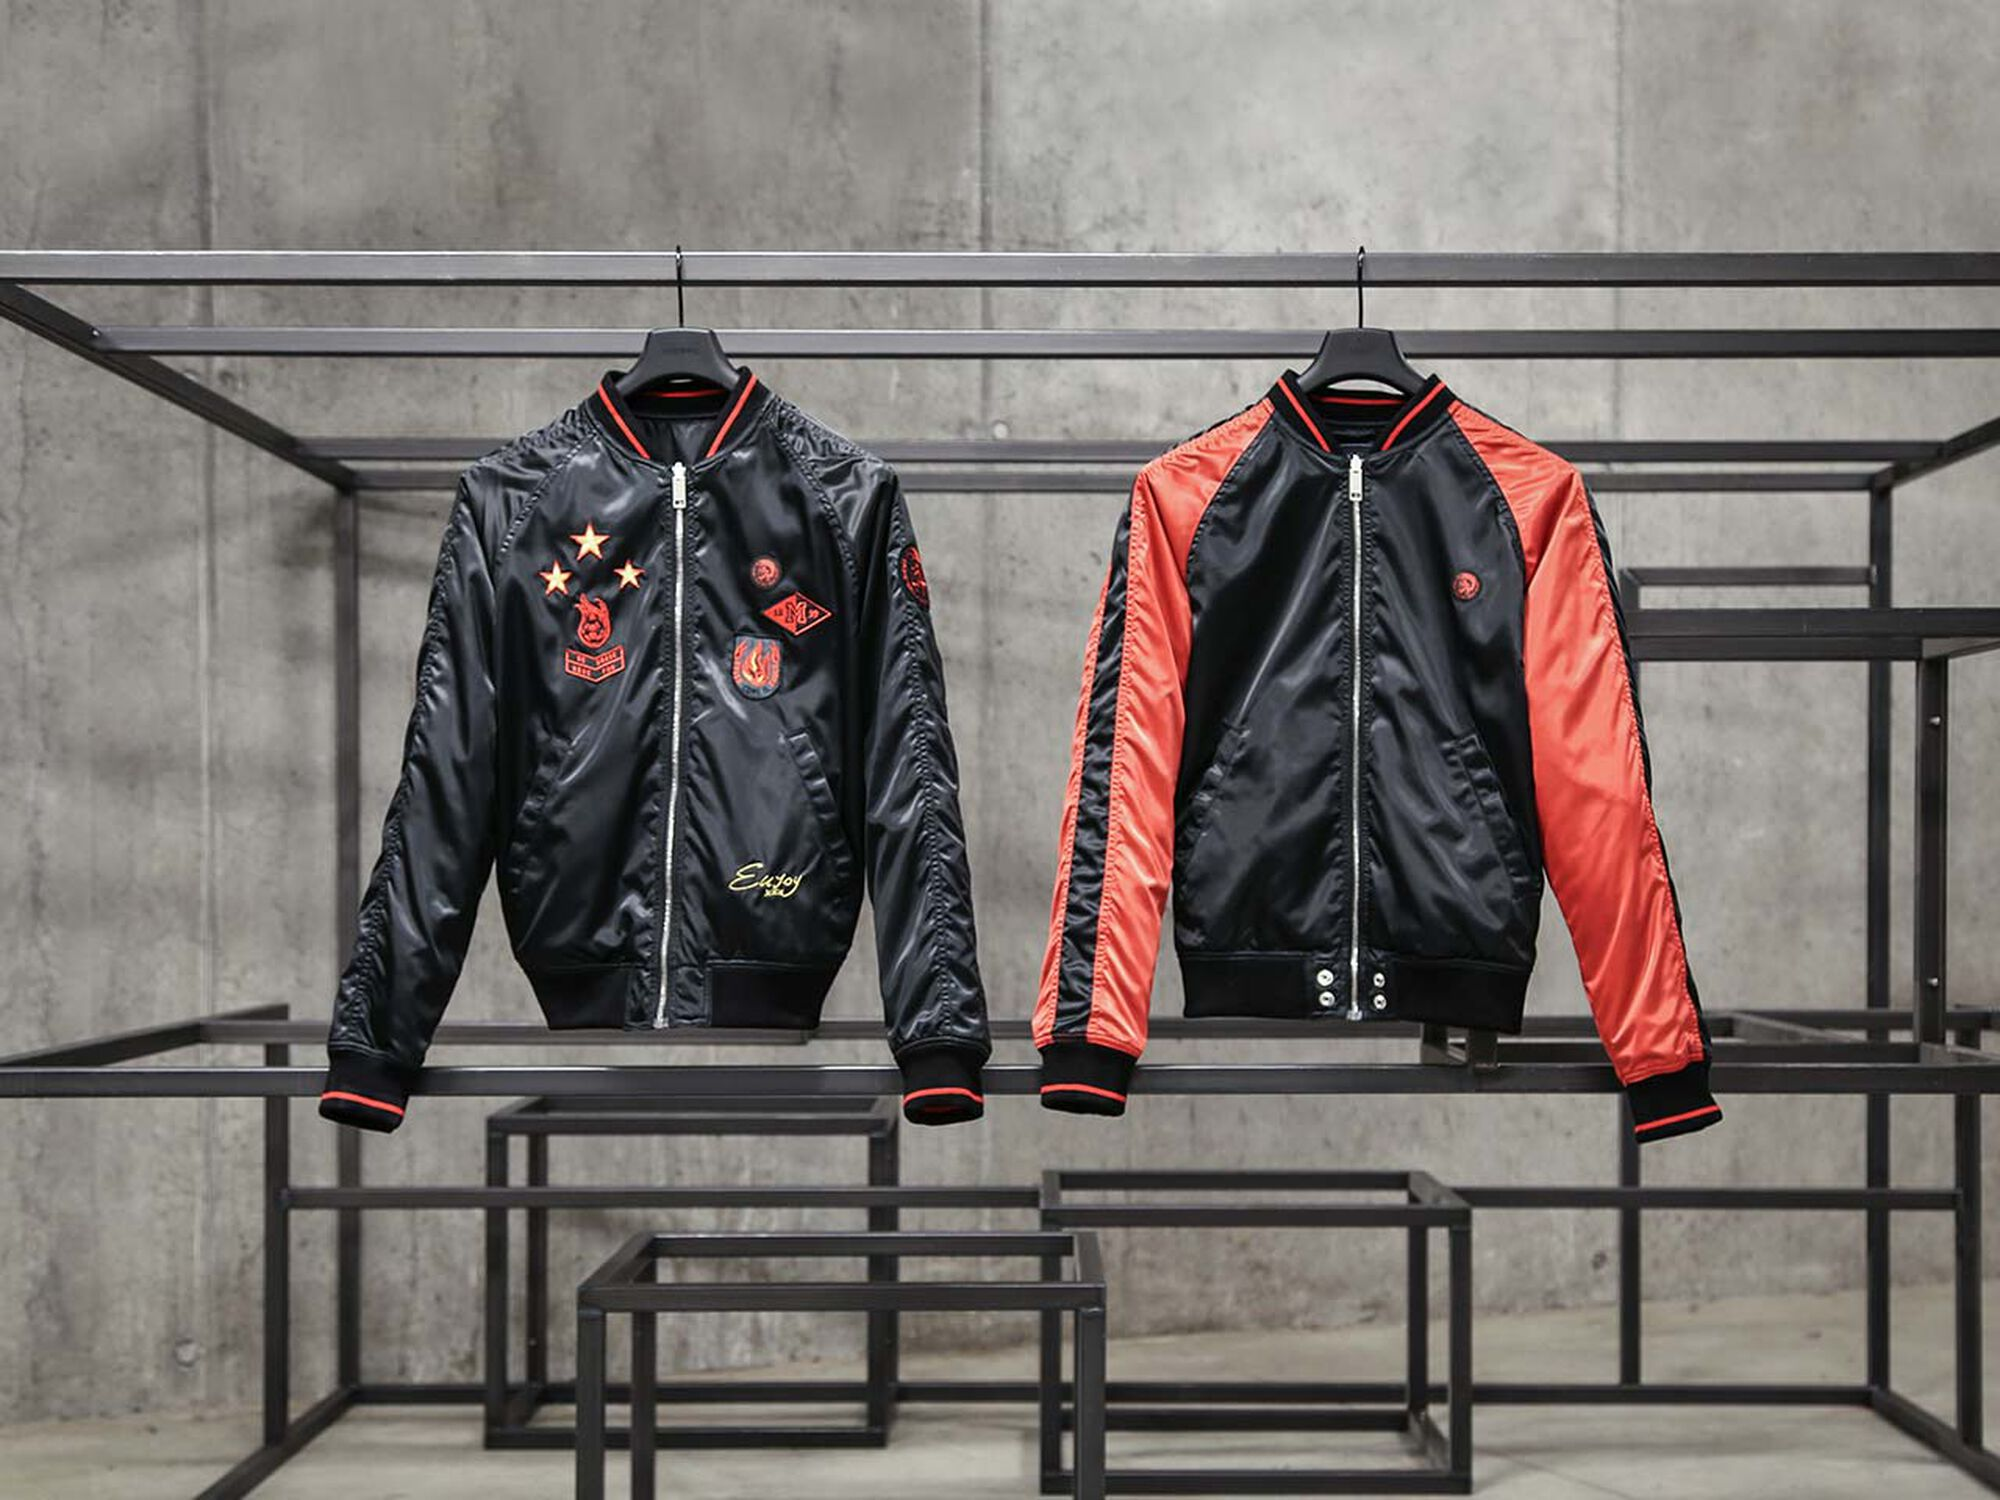 DIESEL X AC MILAN SPECIAL COLLECTION